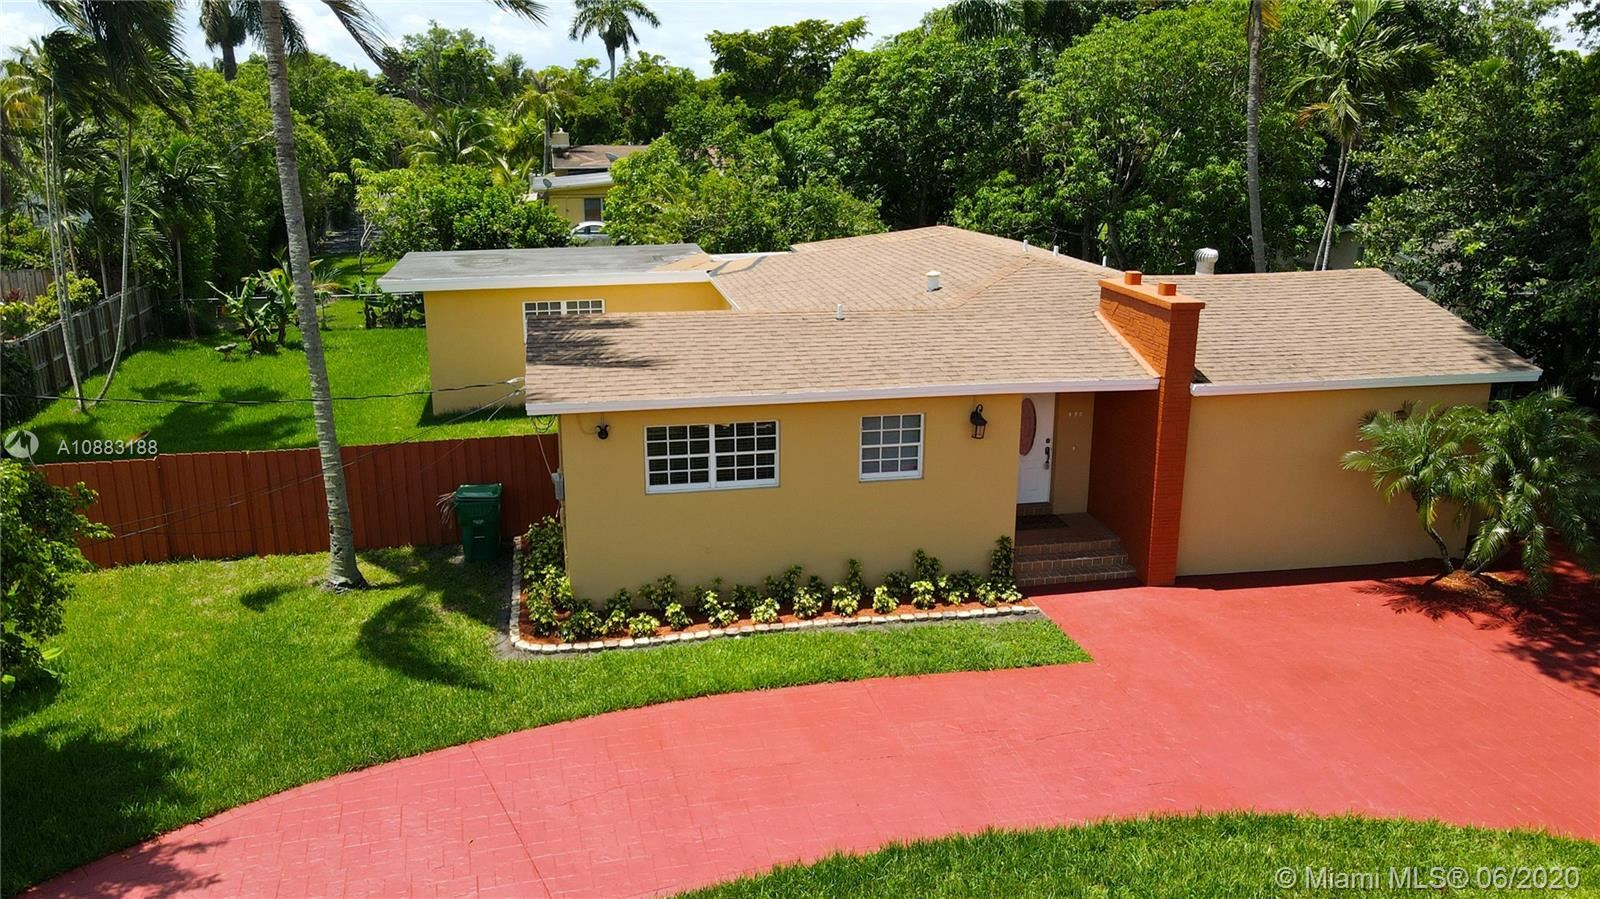 490 NE 113th ST, Miami, FL 33161 - #: A10883188